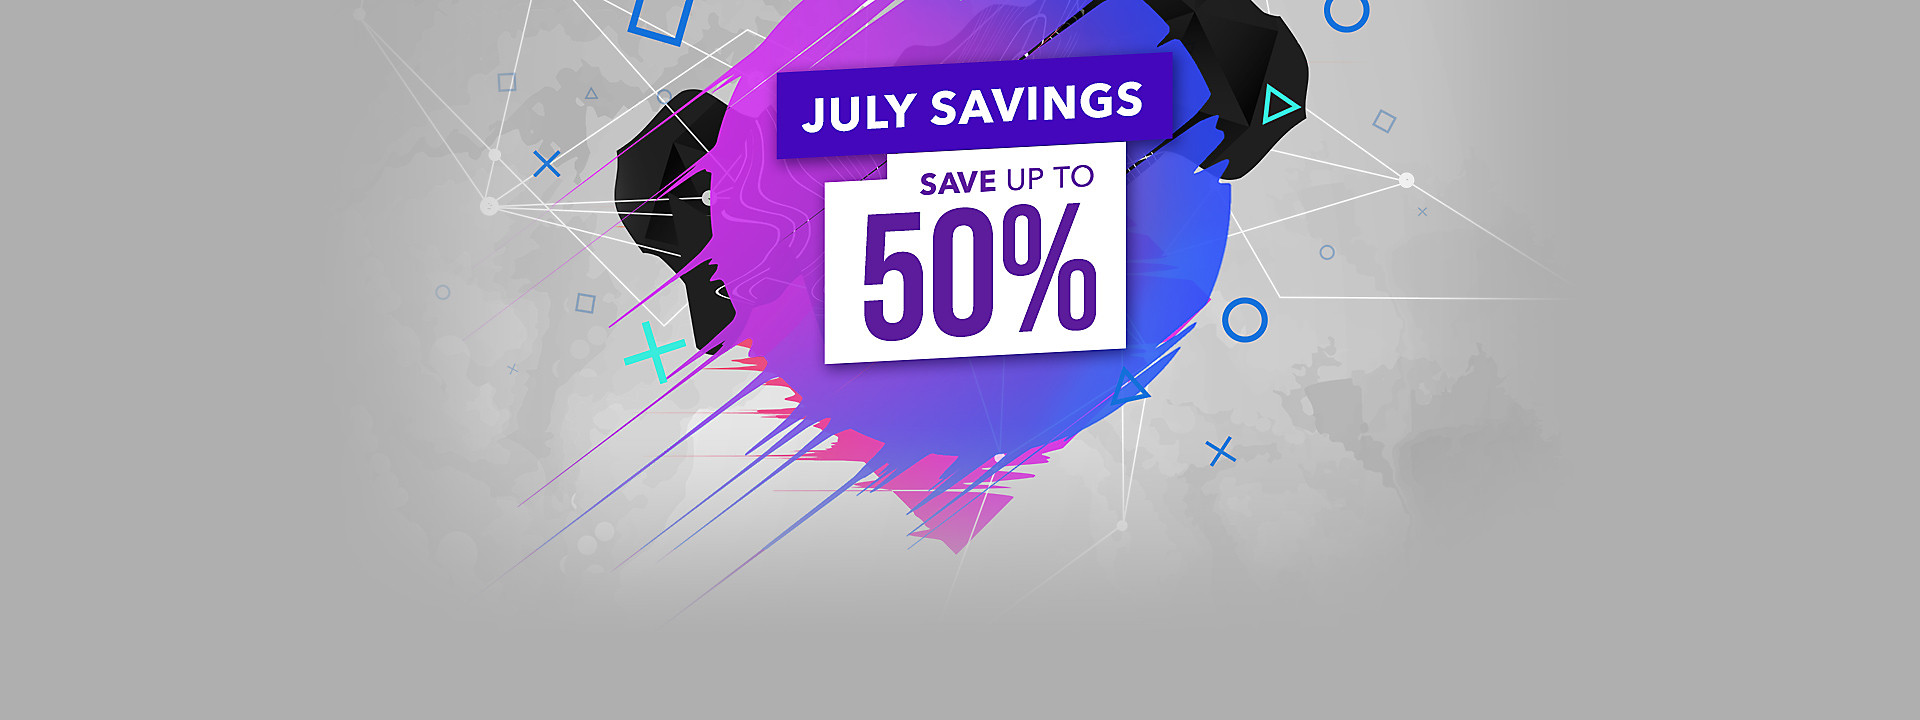 PlayStation Store - July Savings